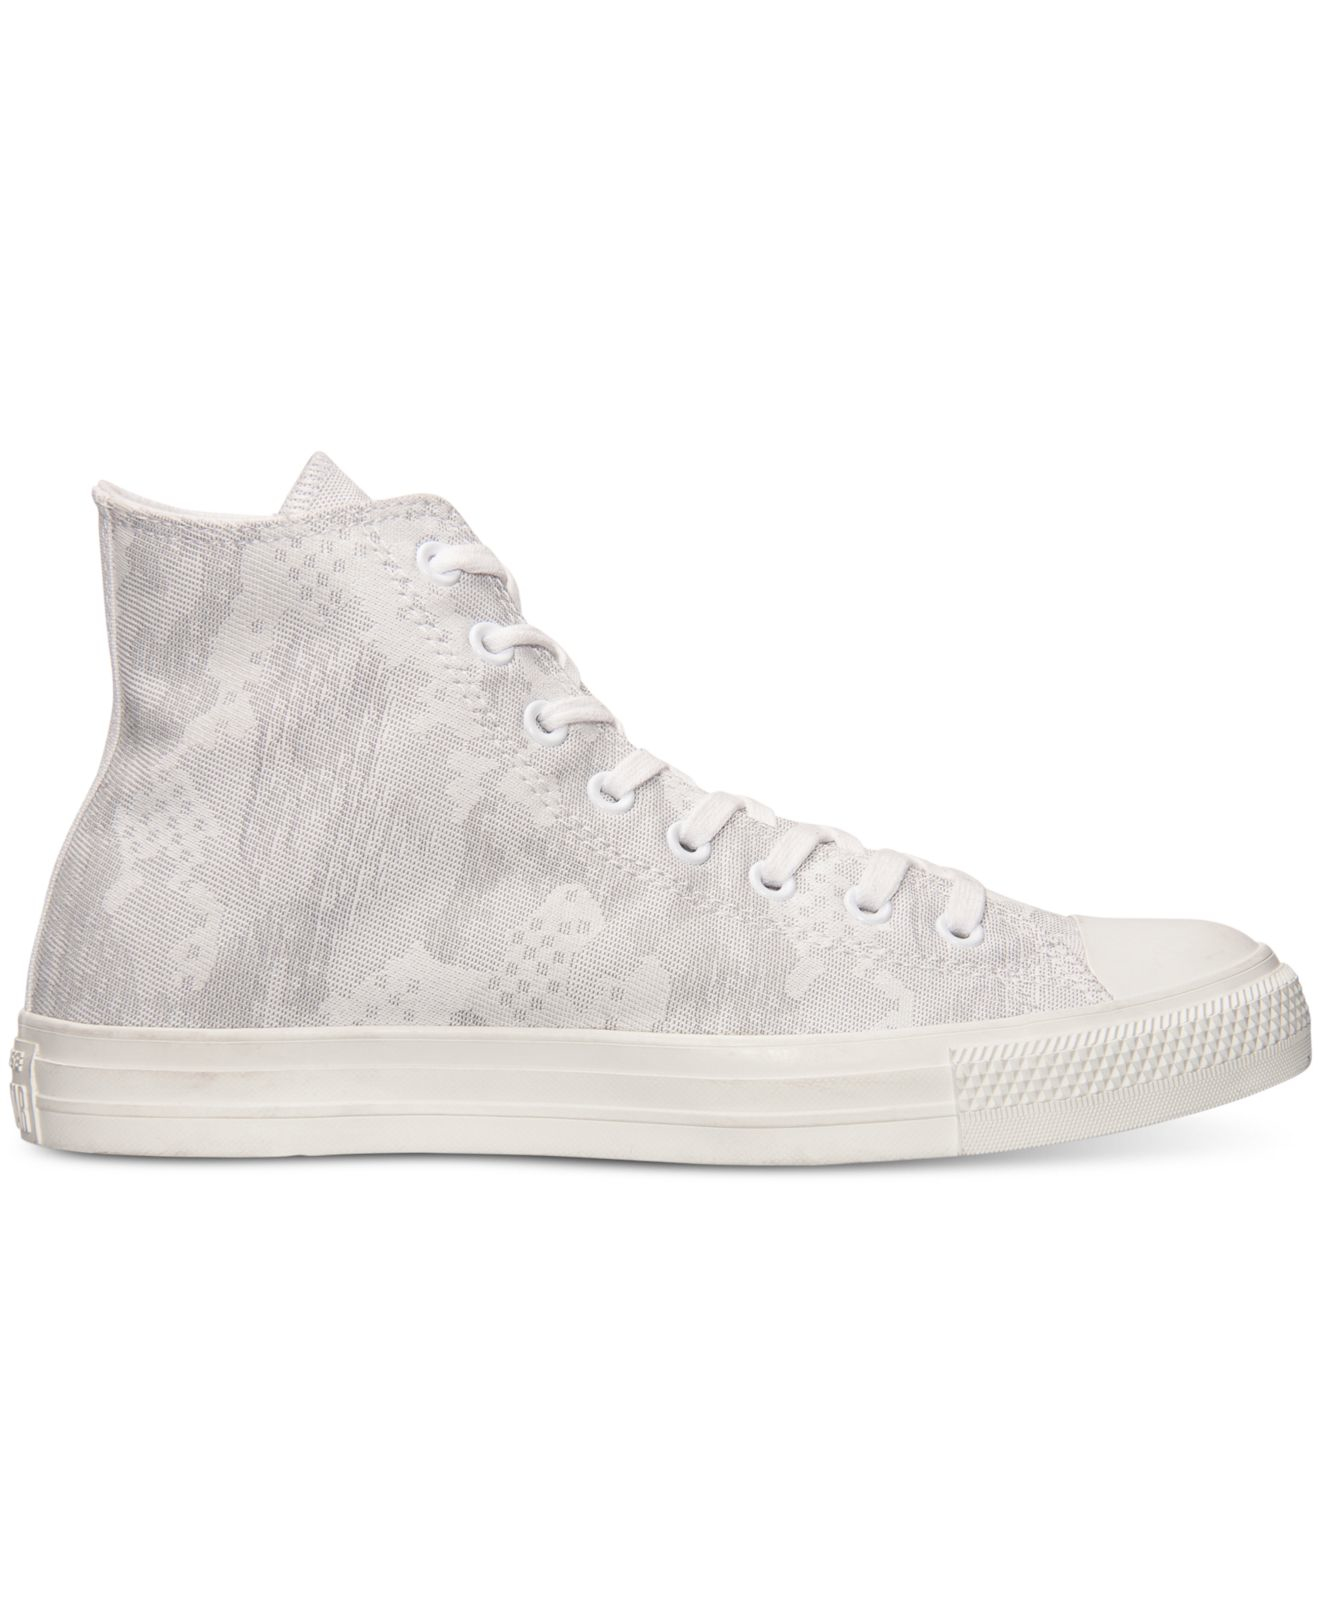 Converse Chuck Taylor Hi White Sneakers  Men